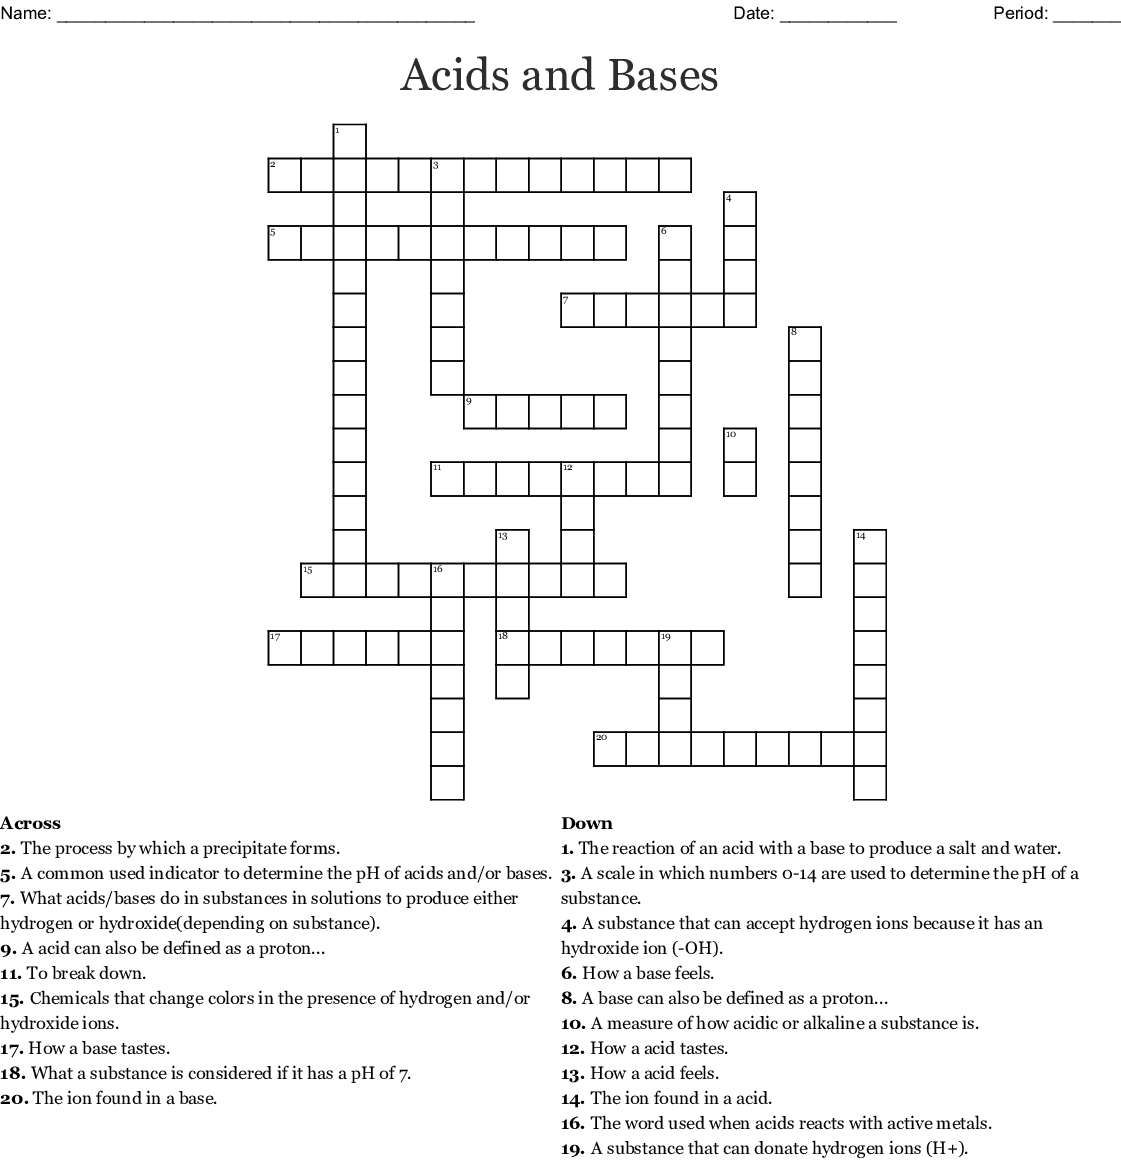 Acids And Bases Crossword